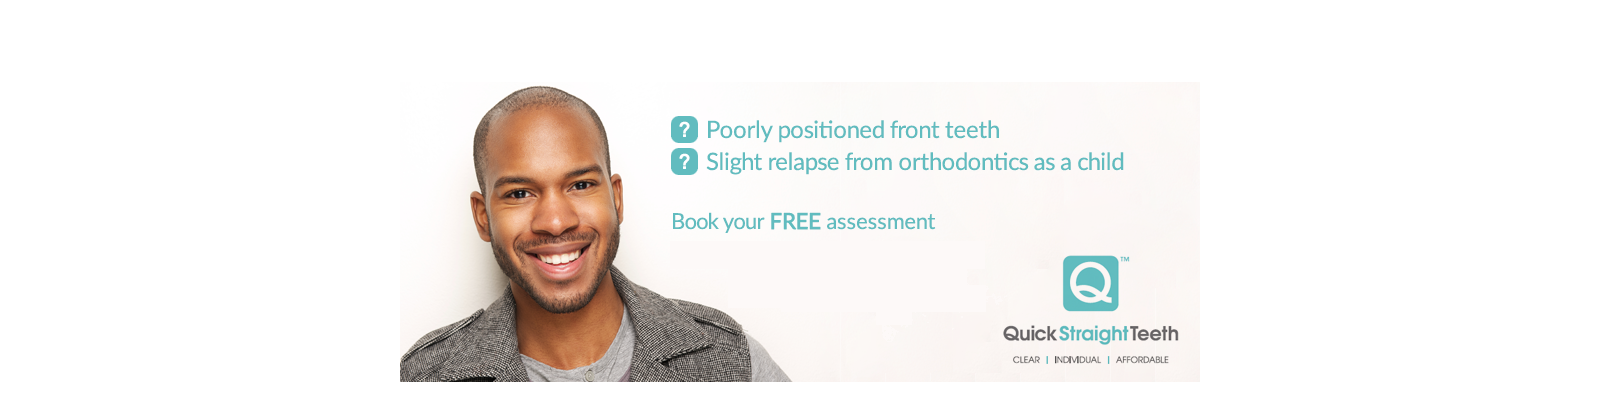 an advert to book a free mouth assessment